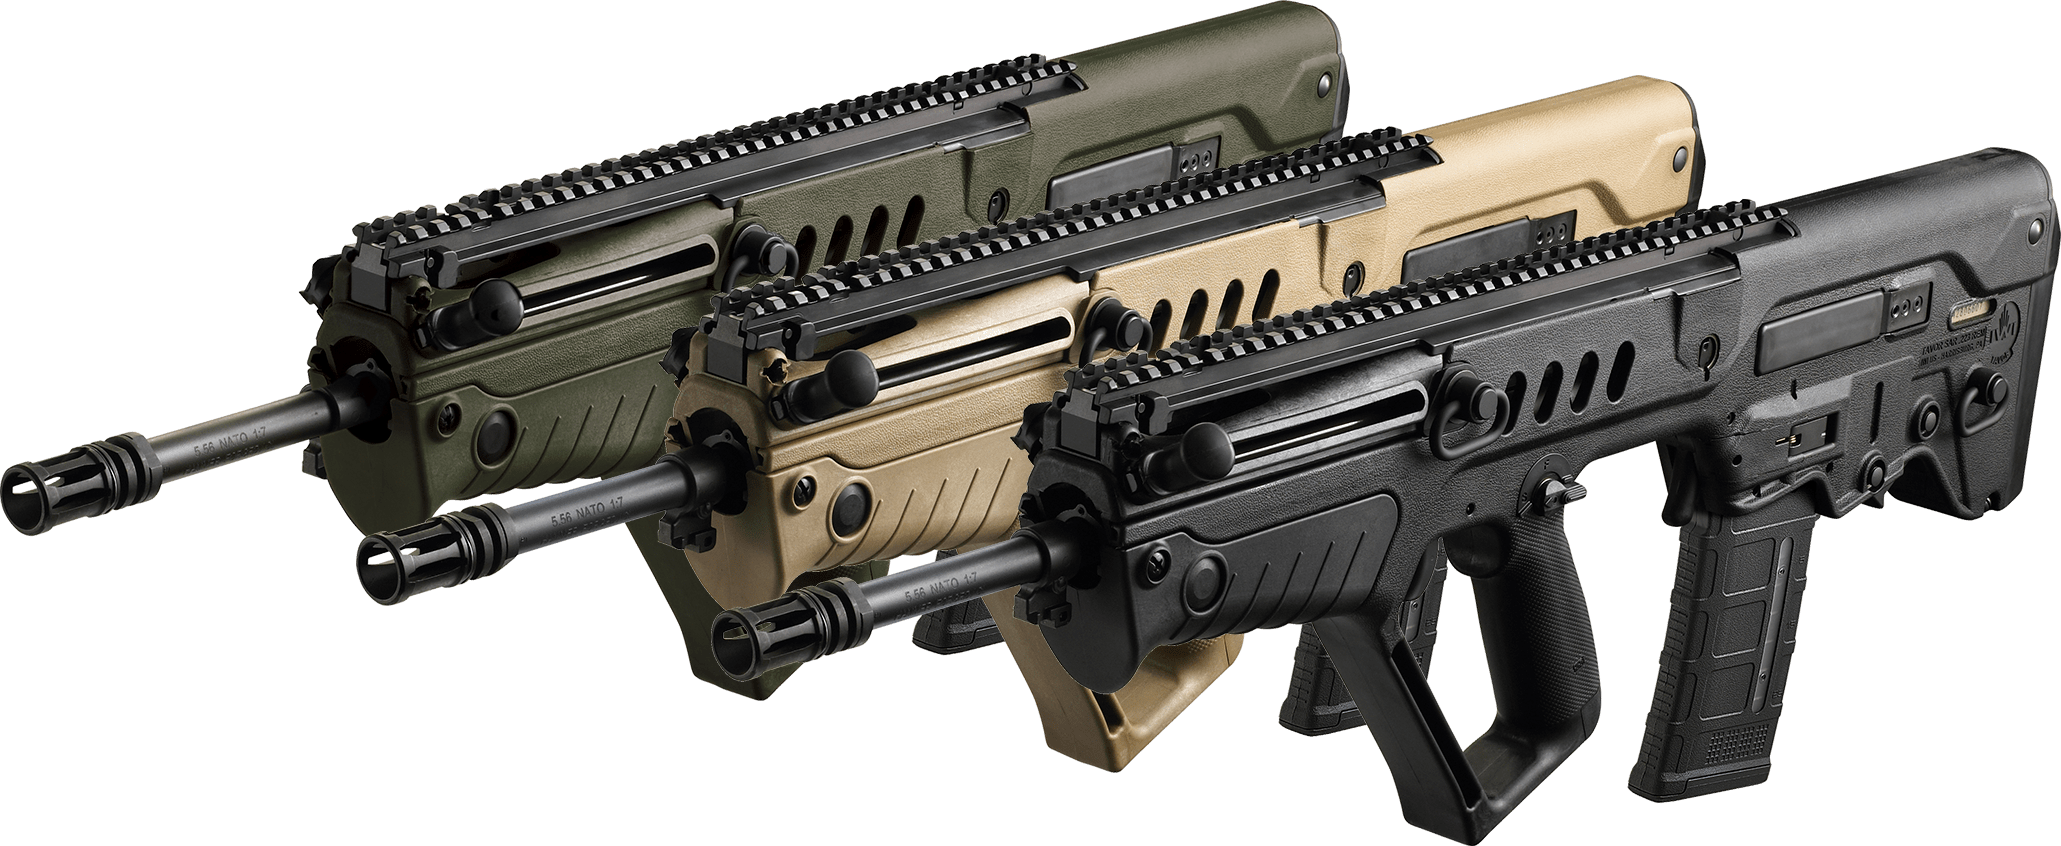 TAVOR bullpup rifle